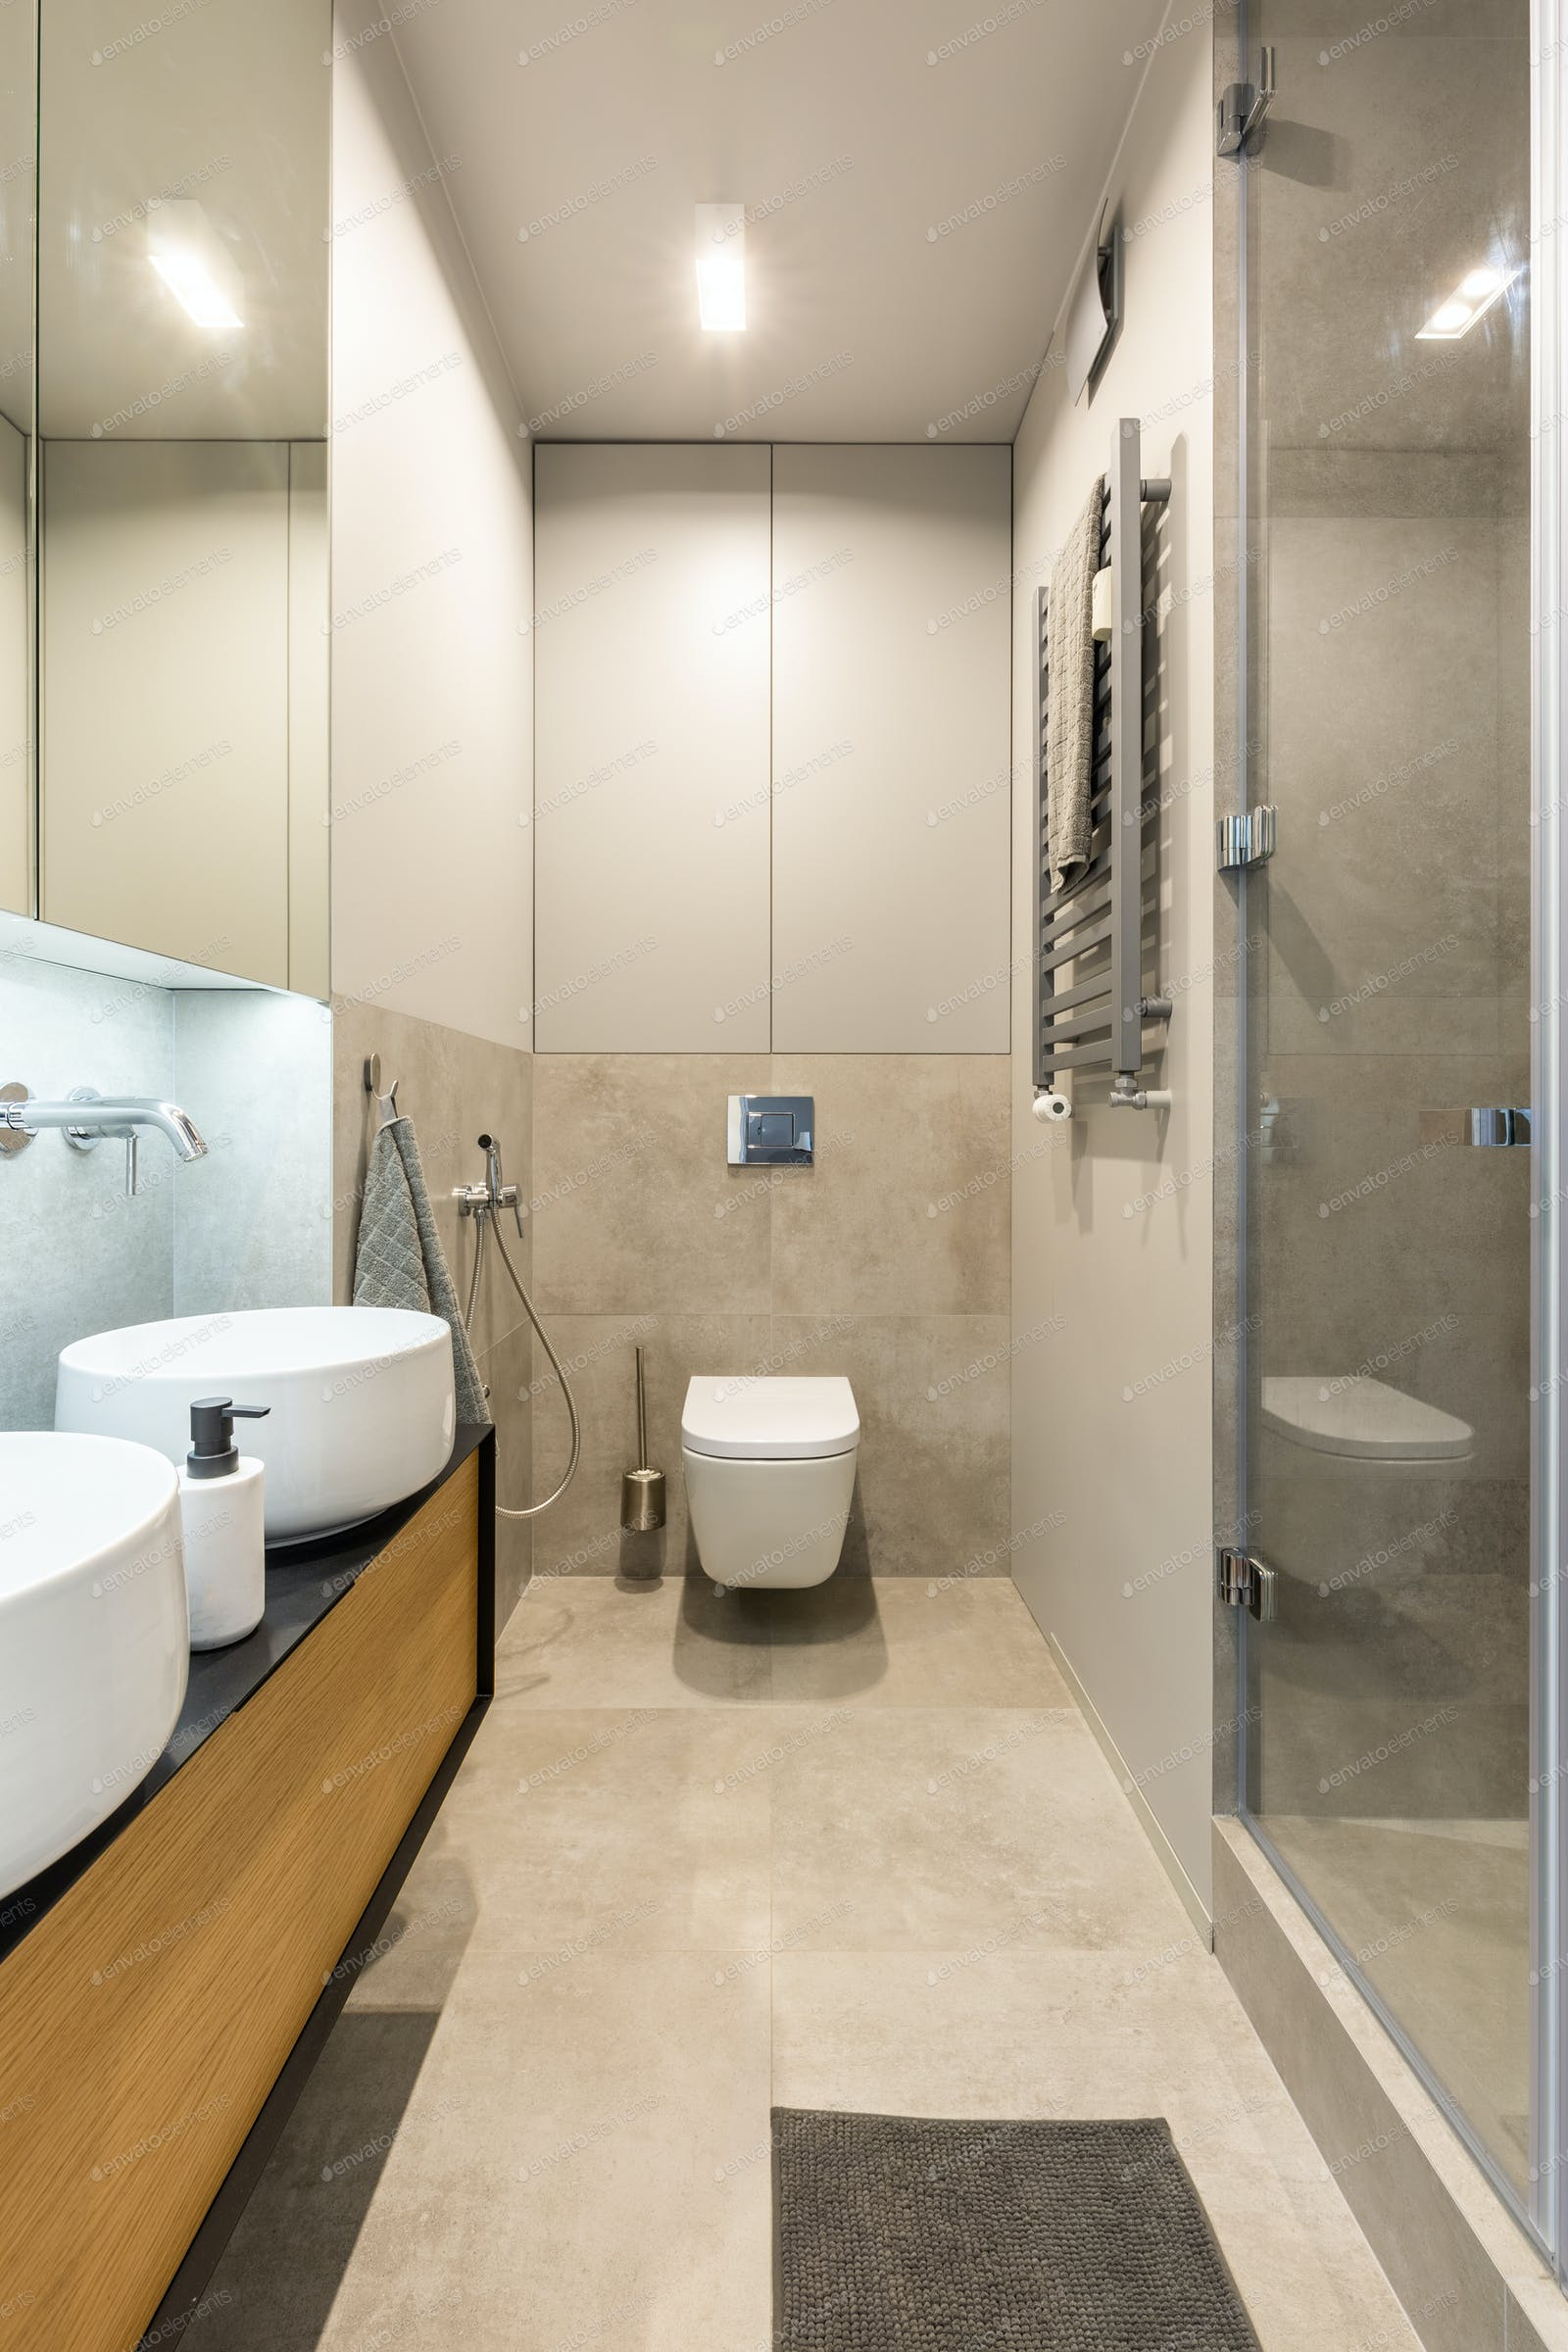 White Toilet Under Light In Modern Beige Bathroom Interior With Photo By Bialasiewicz On Envato Elements